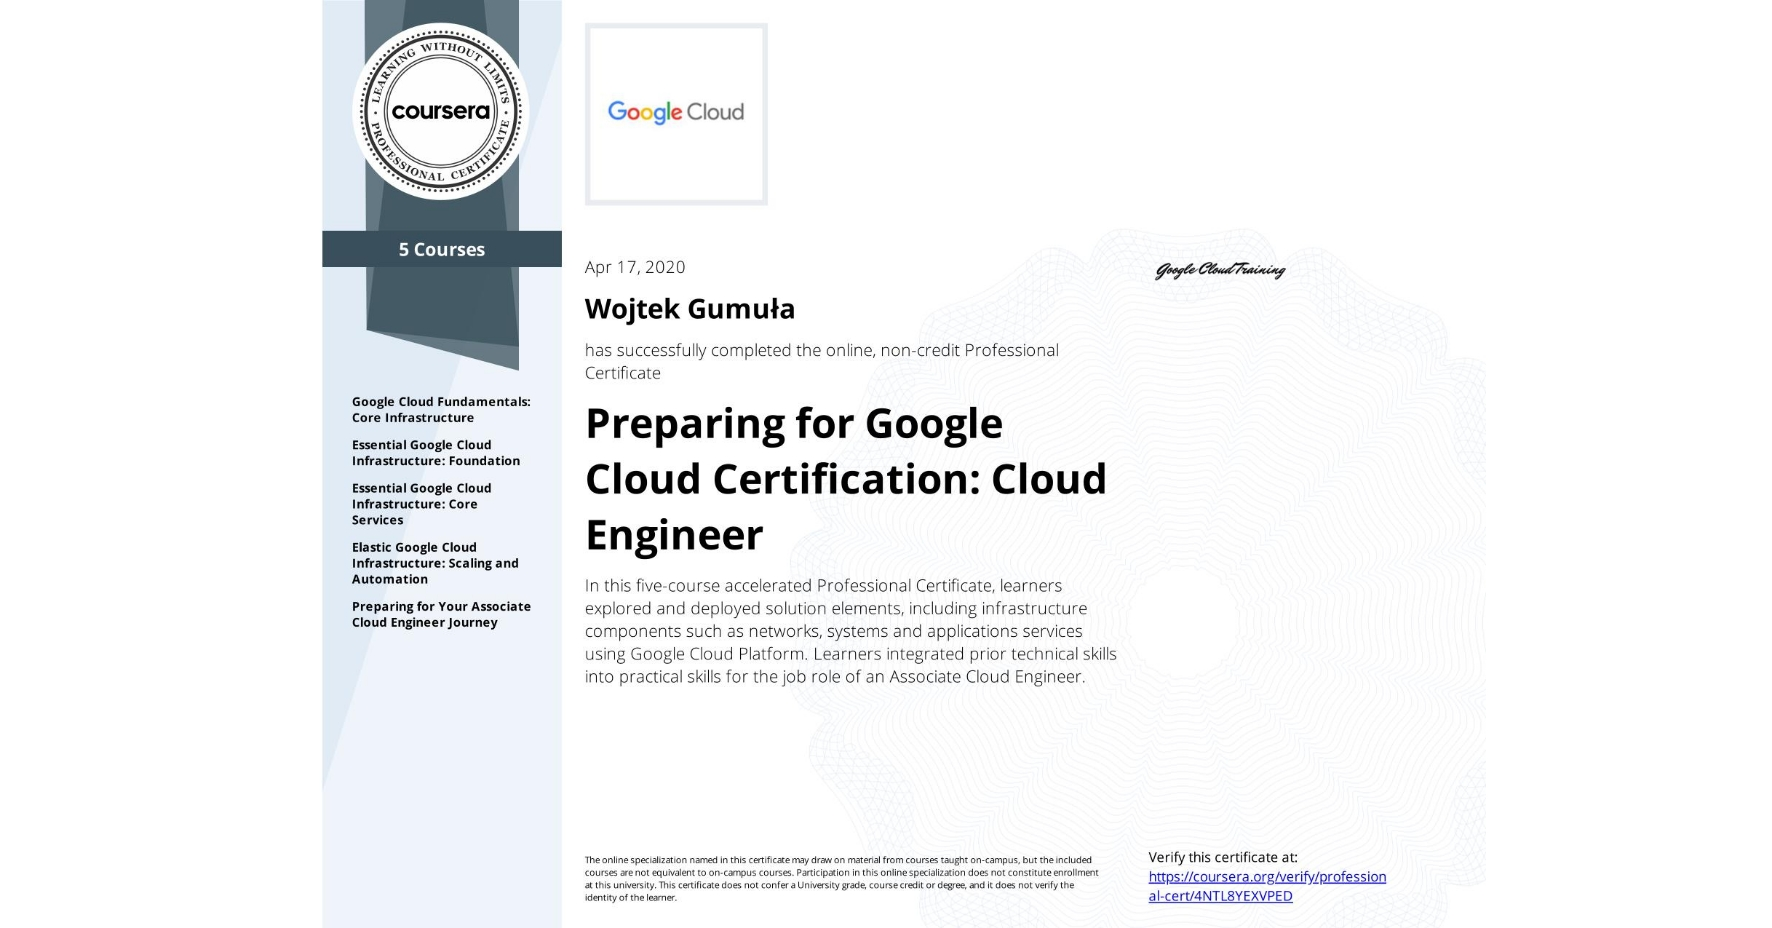 View certificate for Wojtek Gumula, Cloud Engineering with Google Cloud, offered through Coursera. In this five-course accelerated Professional Certificate, learners explored and deployed solution elements, including infrastructure components such as networks, systems and applications services using Google Cloud Platform. Learners integrated prior technical skills into practical skills for the job role of an Associate Cloud Engineer.